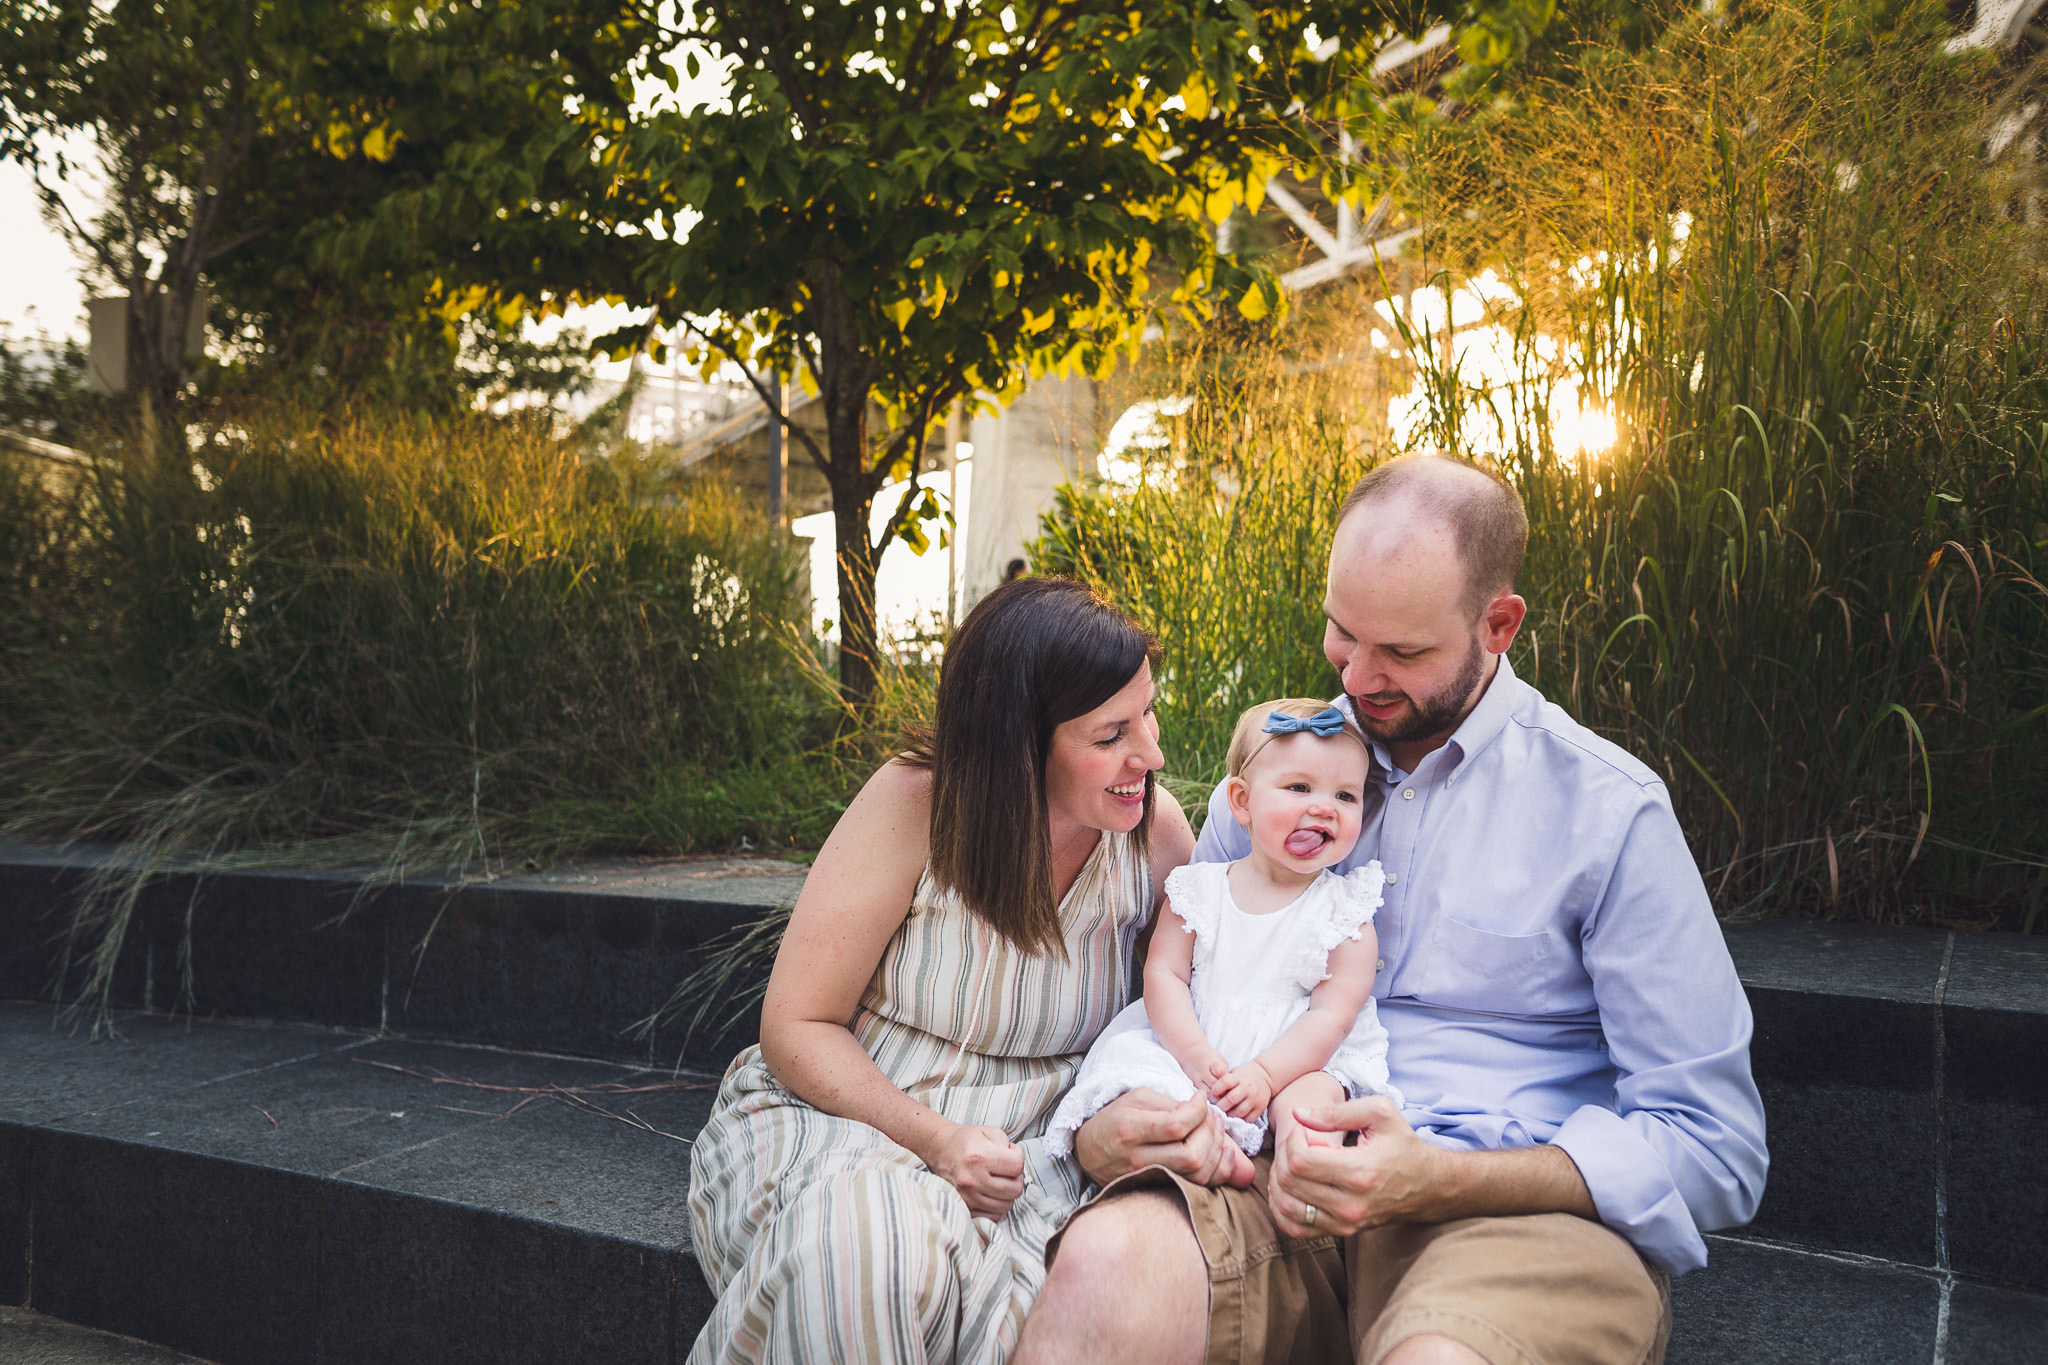 thomas wywrot photography nashville family photographer tennessee tn pictures photos newborn baby infant brentwood franklin sunset outdoor candid lifestyle park cumberland sticking out tongue